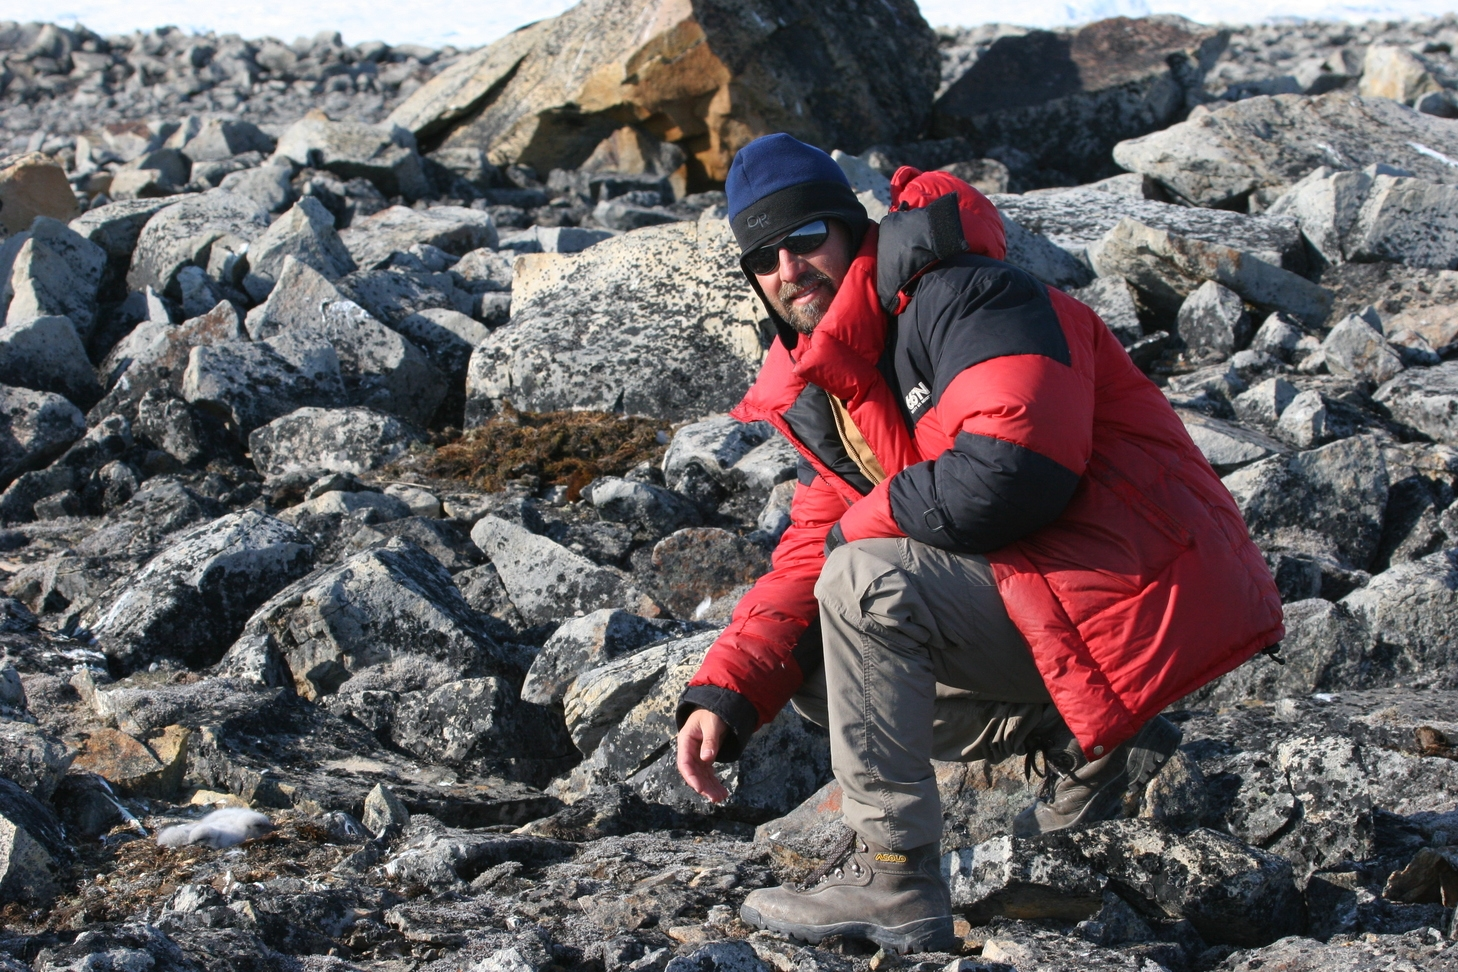 Dr. Mark Mallory is a Canada Research Chair on Coastal Wetland Ecosystems, based at  Acadia  University in Nova Scotia.  He has been studying High Arctic gulls since 2000, and was the lead on building the  Nasaruvaalik Island  research station.  His work has been highly collaborative with most of the rest of the HAGRG members, investigating issues of breeding phenology, reproductive success, annual survival, movements and key habitat sites, and contaminants in many of these birds.